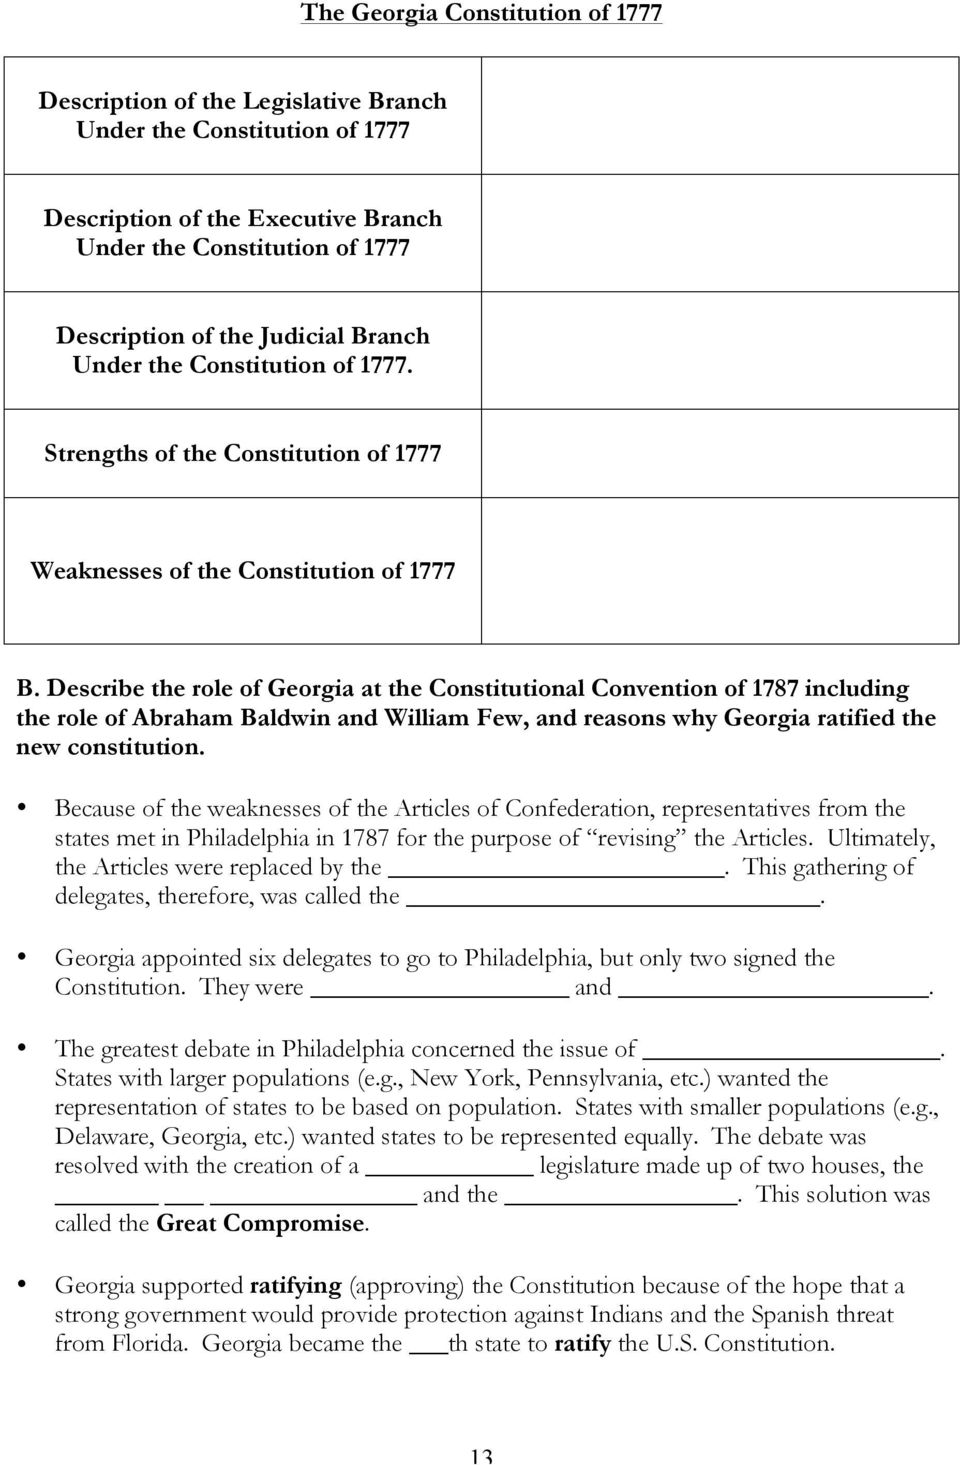 Describe the role of Georgia at the Constitutional Convention of 1787  including the role of Abraham